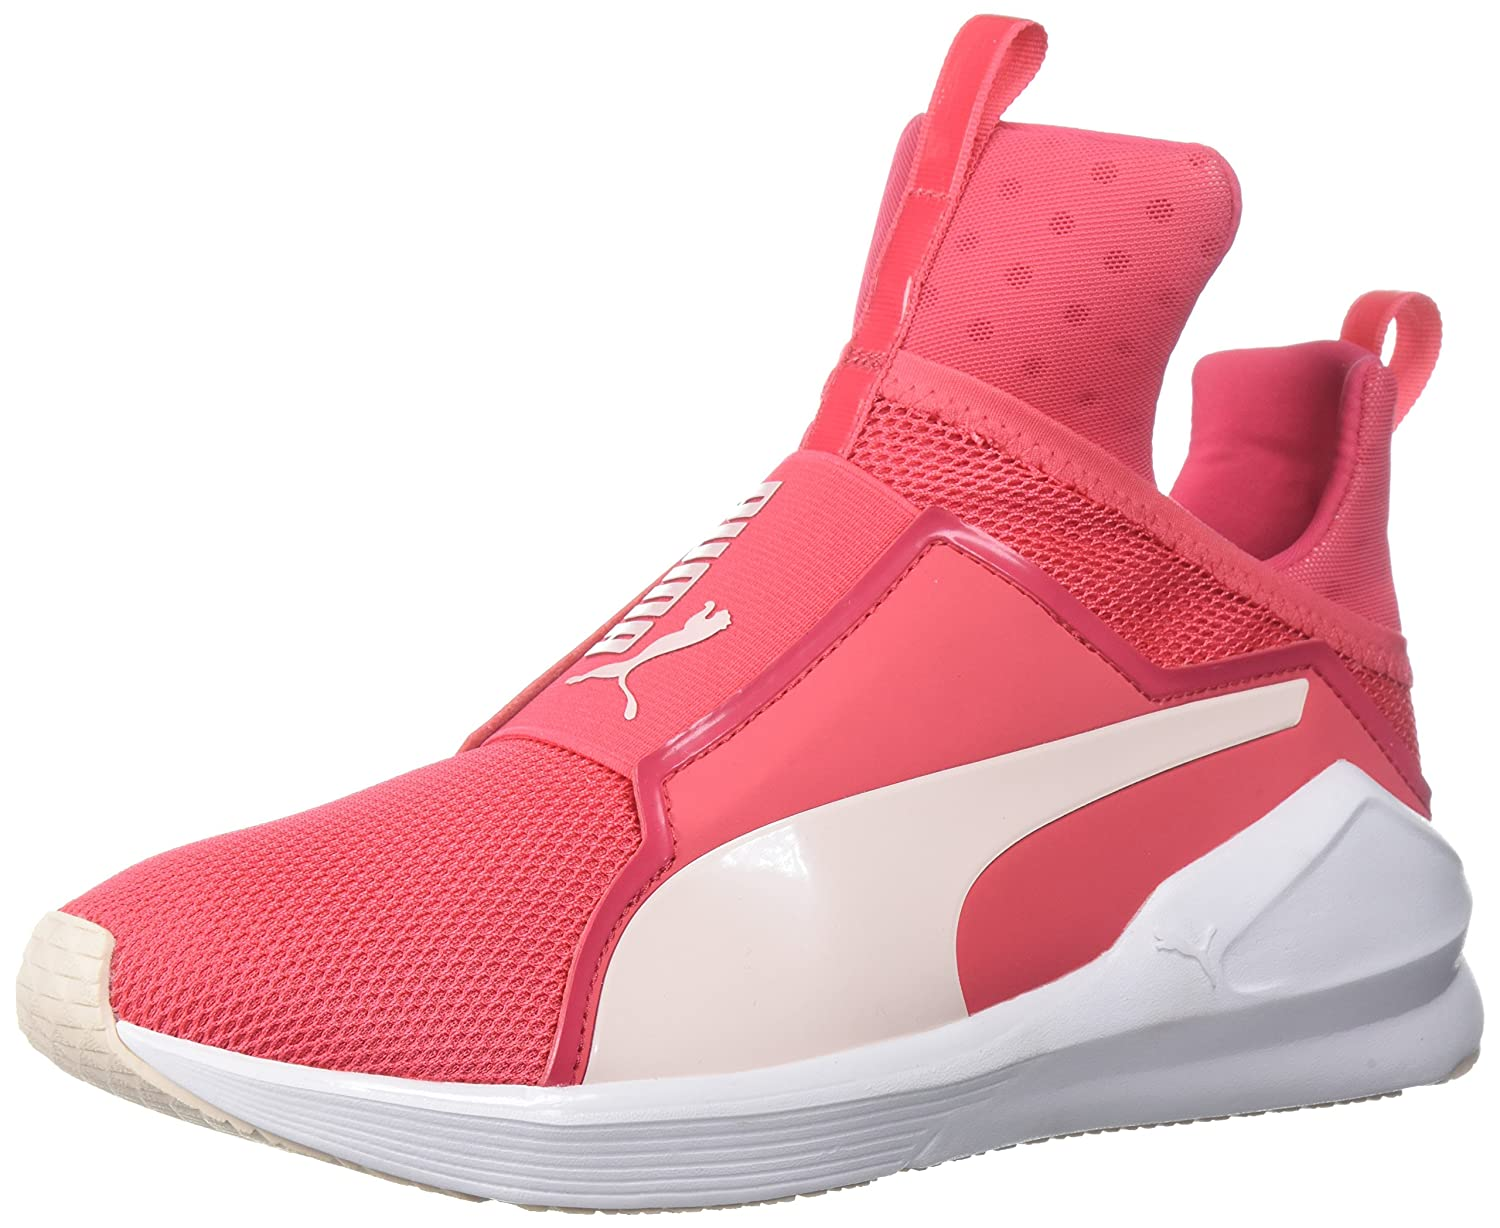 PUMA Women's Fierce Core Cross-Trainer Shoe B072R6M7ZF 9 B(M) US|Paradise Pink-puma White